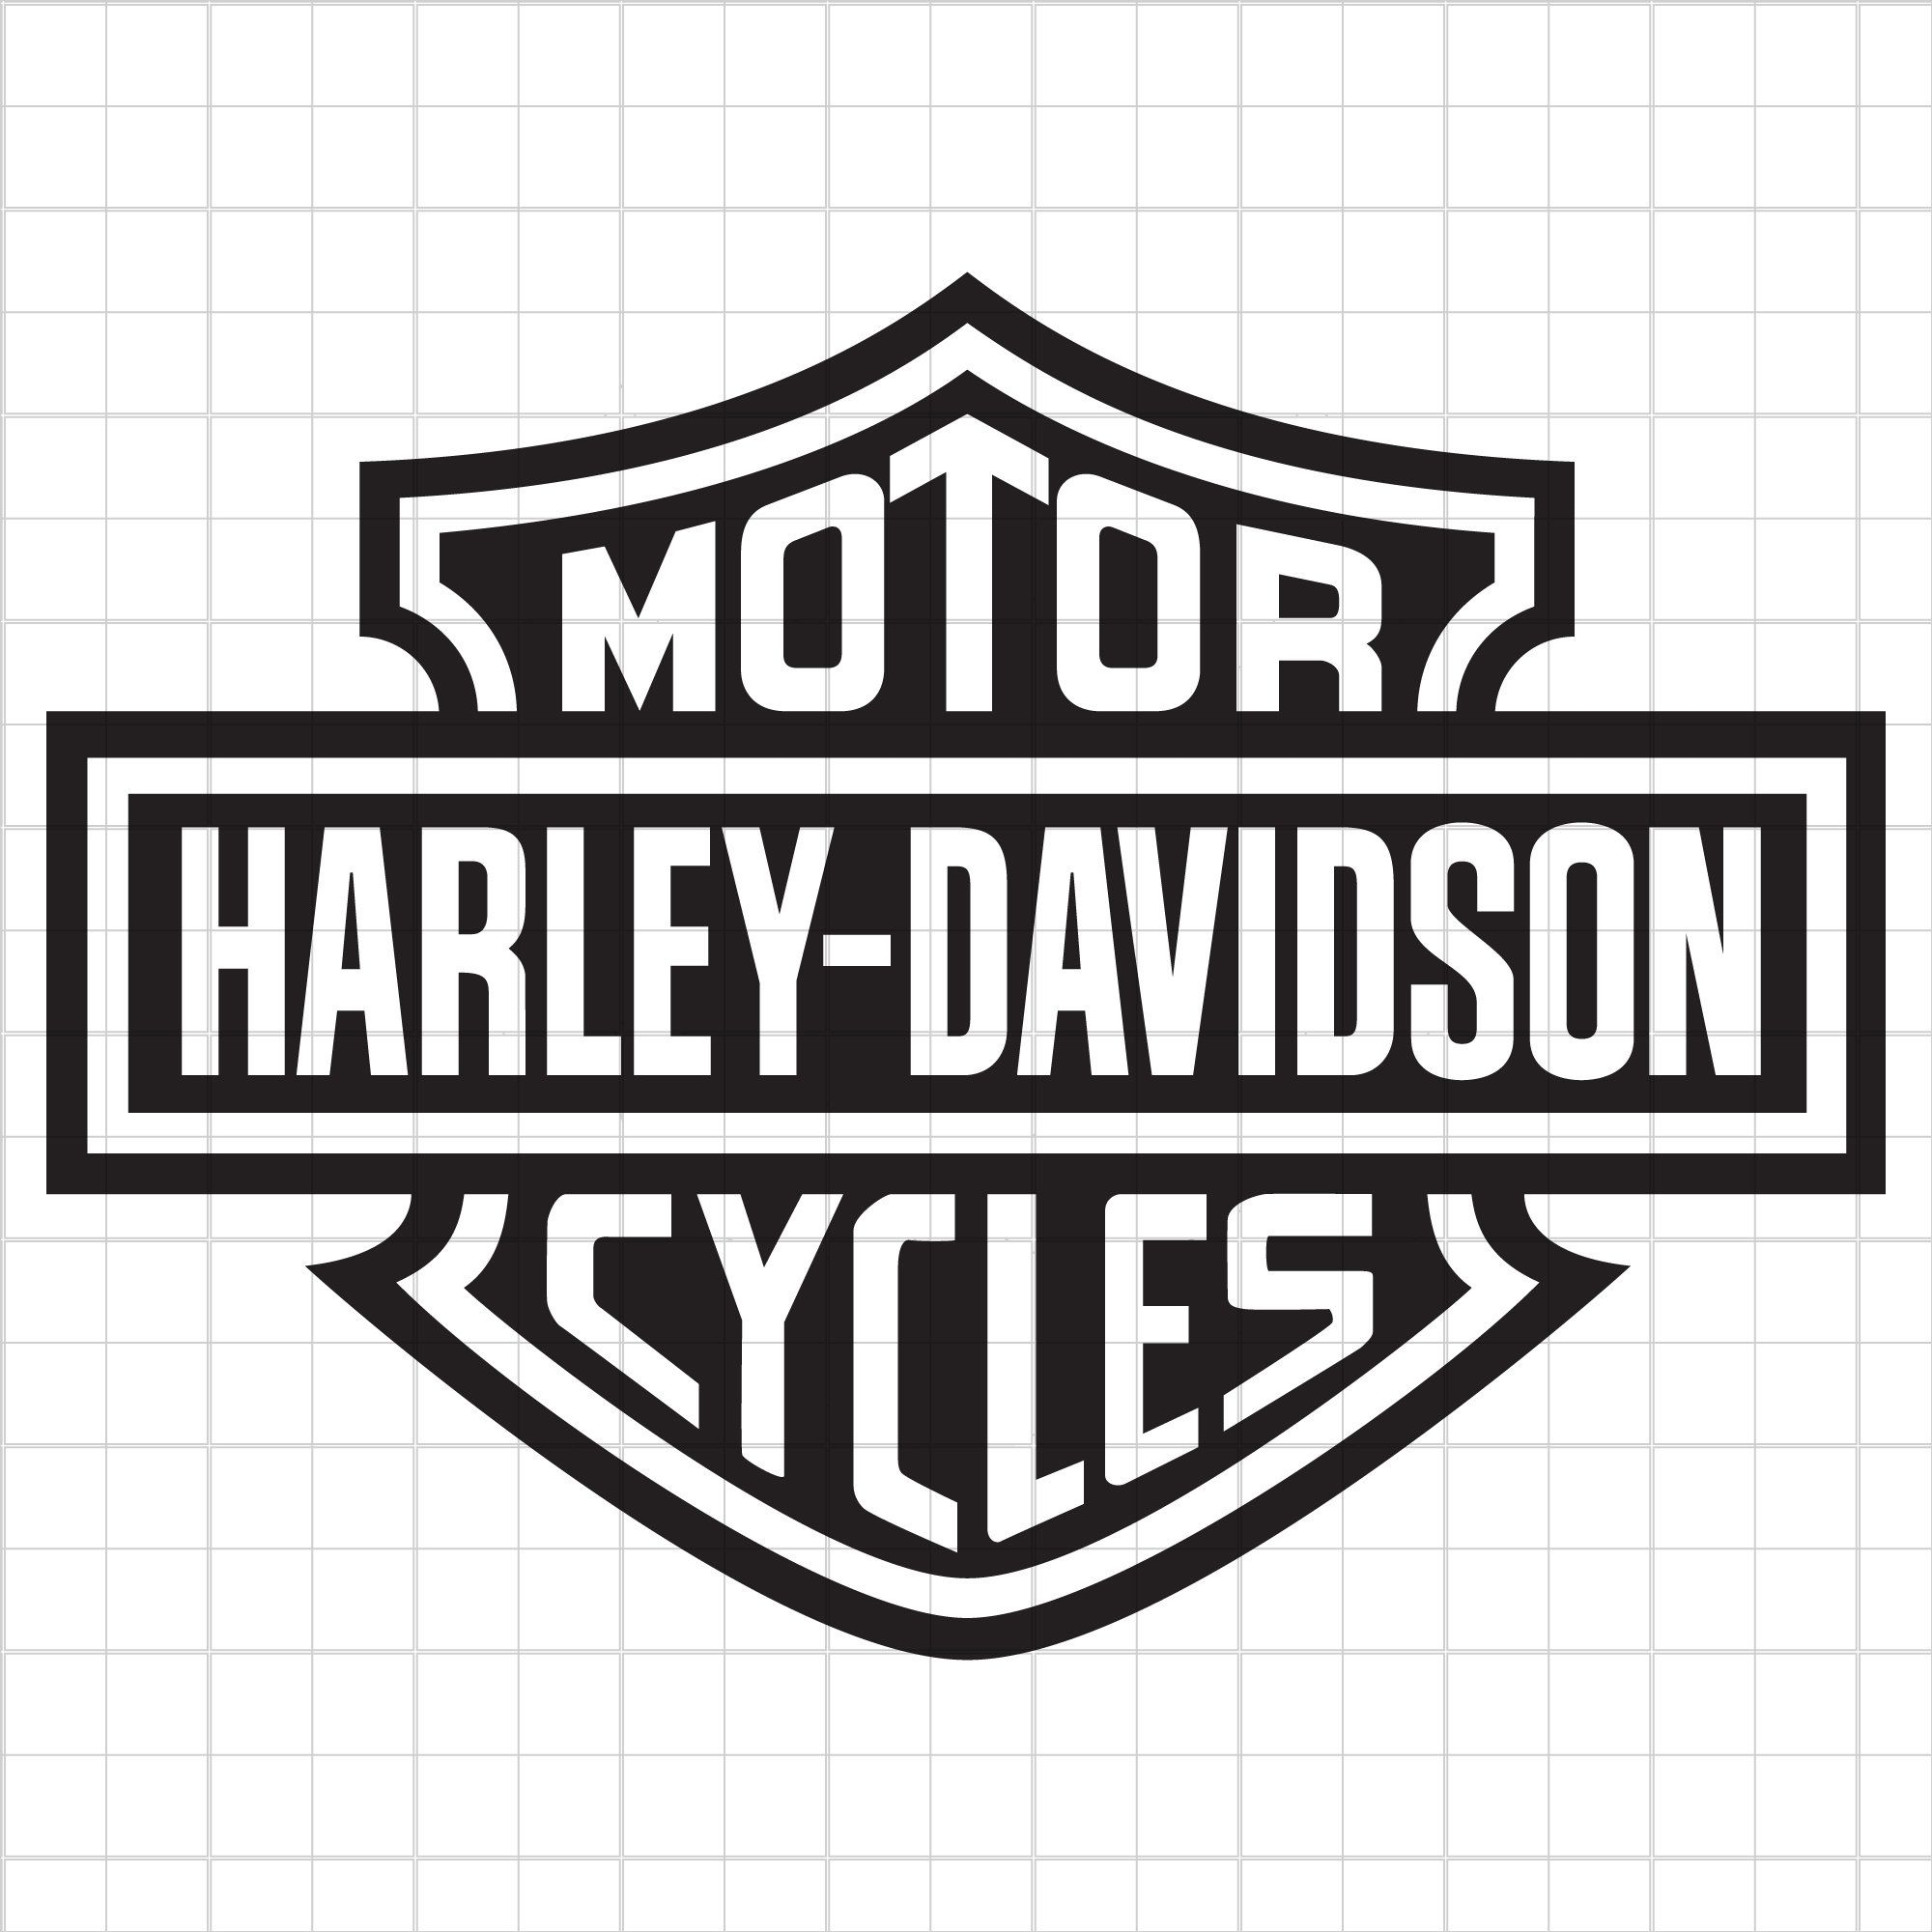 Pin By Becky Coleman On Svg Harley Davidson Logo Harley Davidson Harley